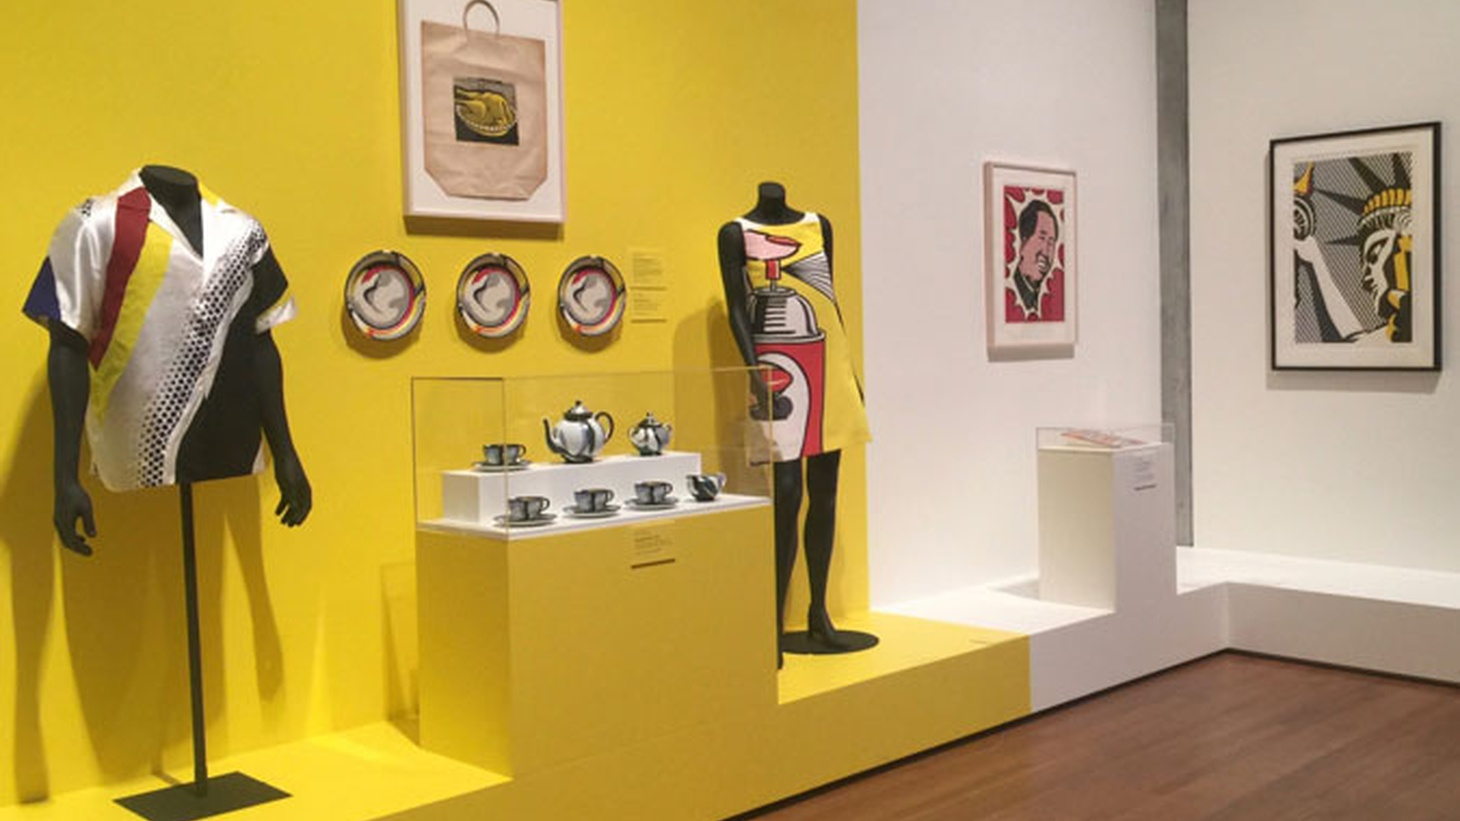 Edward Goldman talks about the crowd-pleasing exhibition of artworks by Roy Lichtenstein at the Skirball Cultural Center.